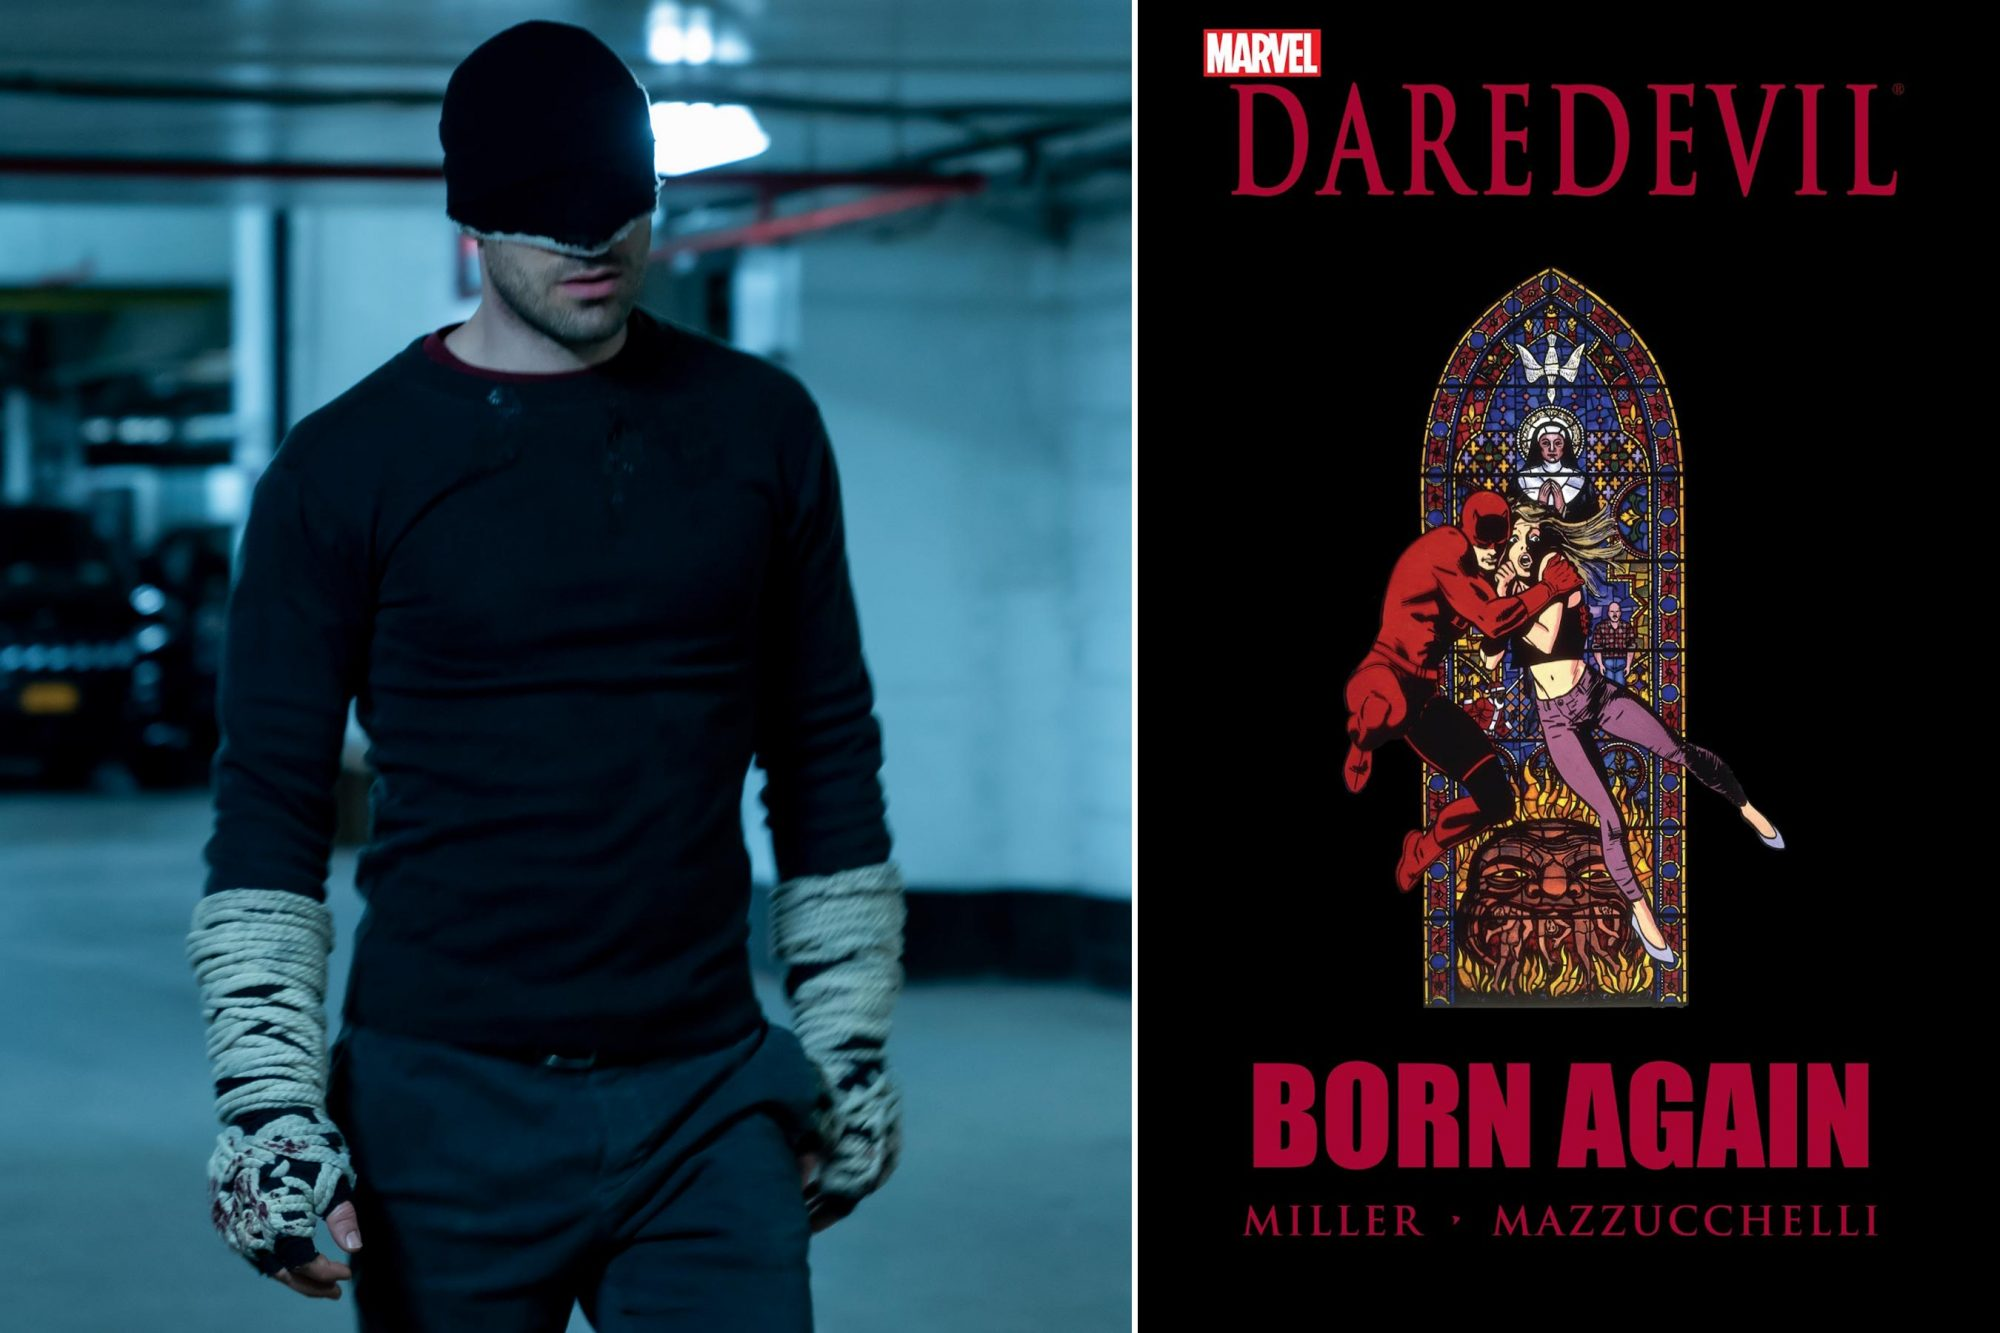 If you watch Marvel's Daredevil... then read Daredevil: Born Again